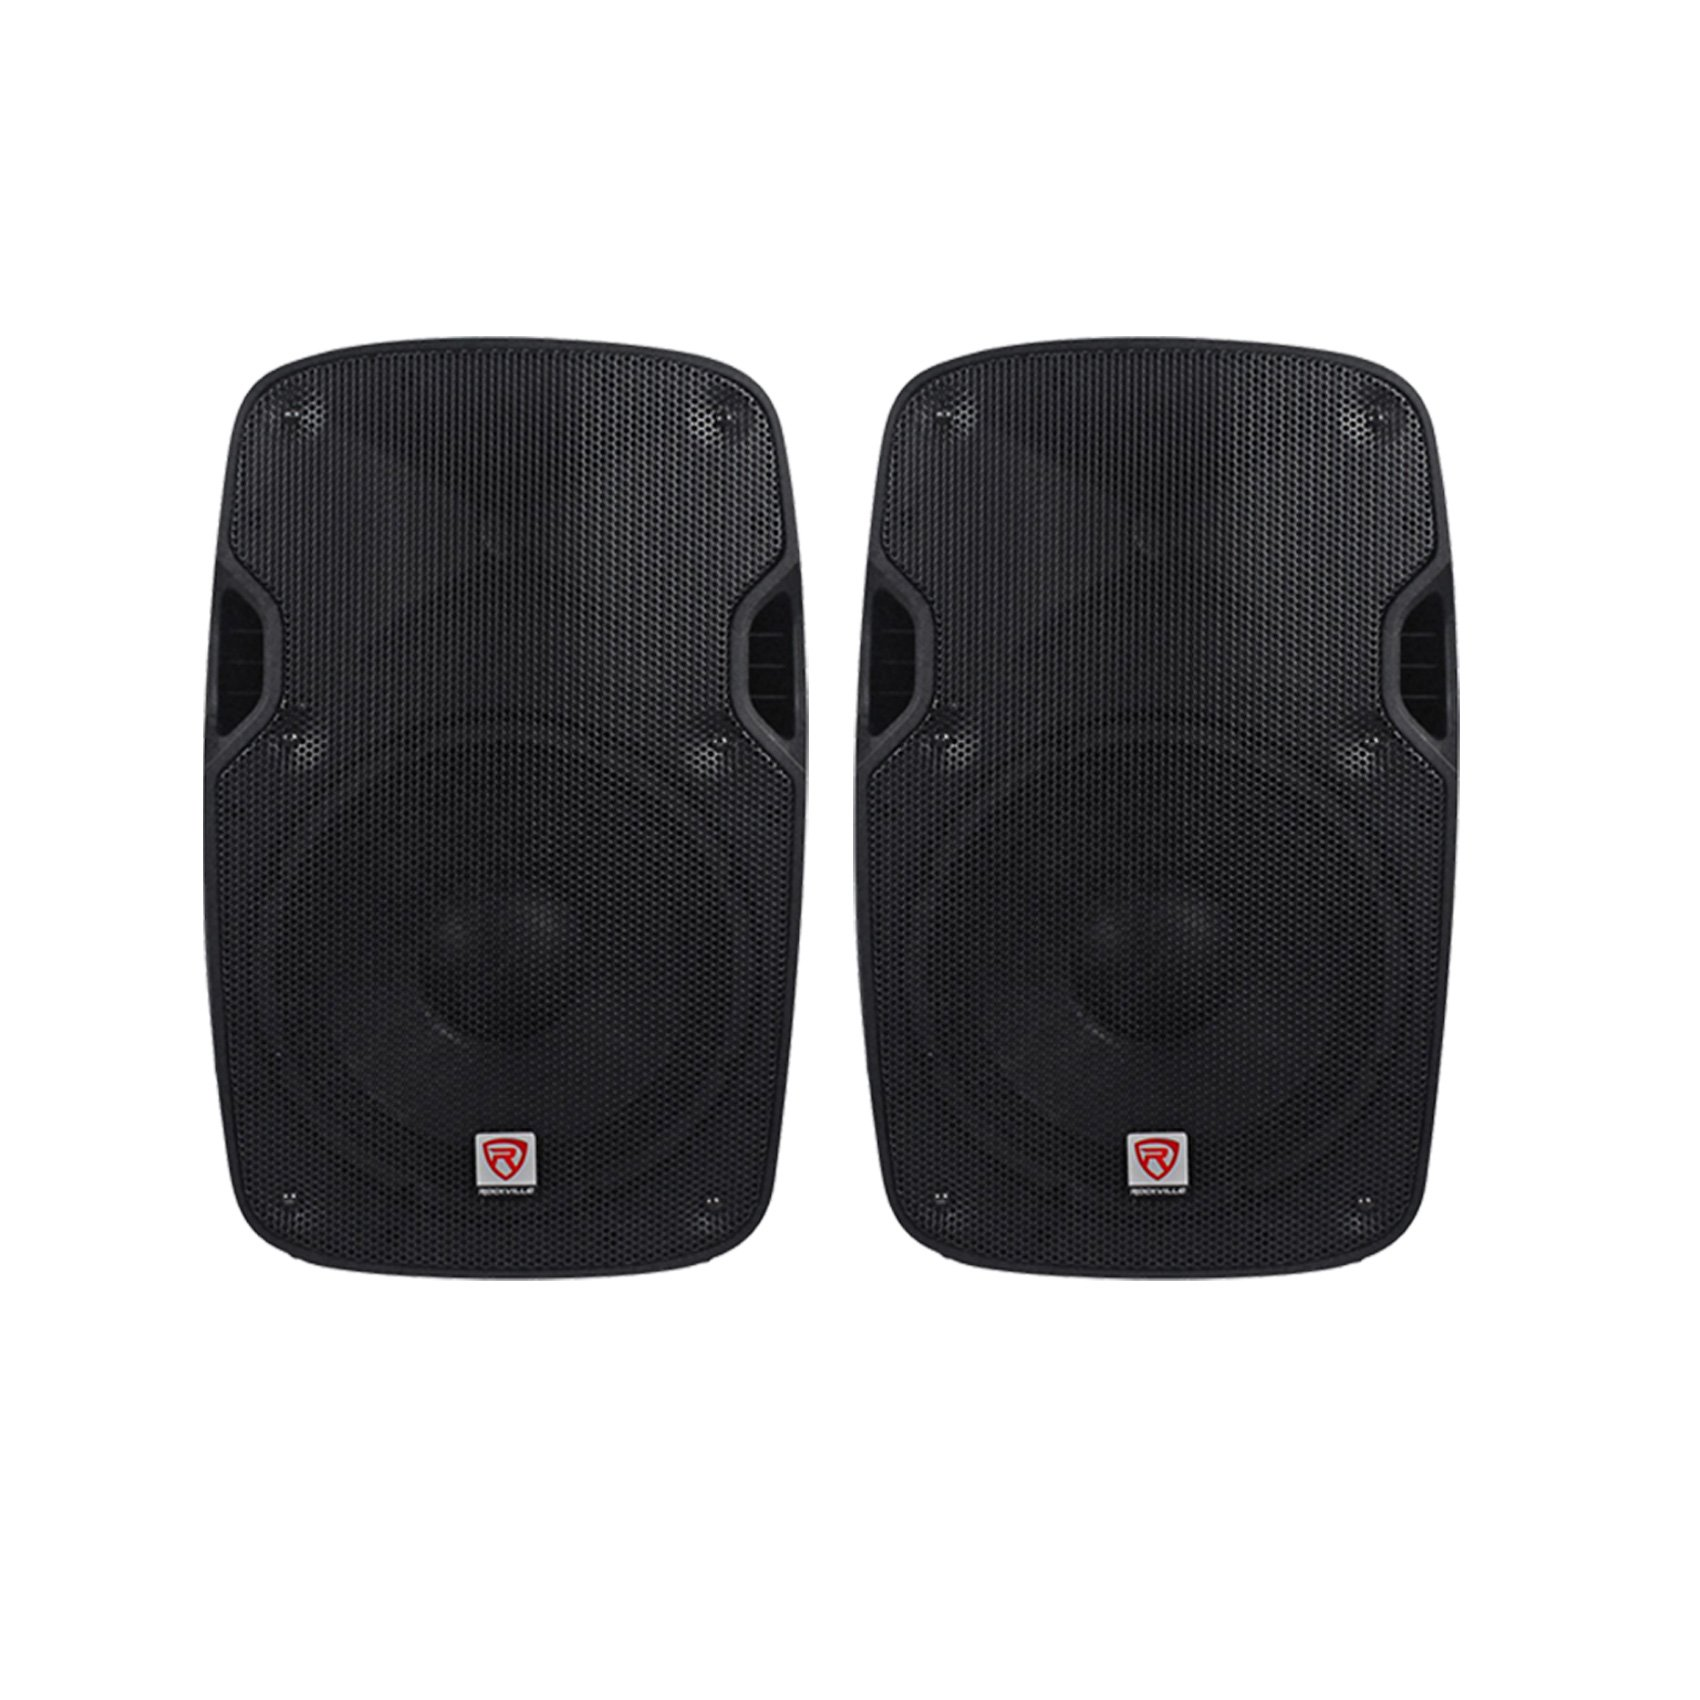 (2) Rockville SPGN158 15'' Passive 8-Ohm Lightweight DJ/PA Speakers Totaling 3200 Watt Peak With 3'' Aluminum Voice Coil For Amazing Sound Clarity